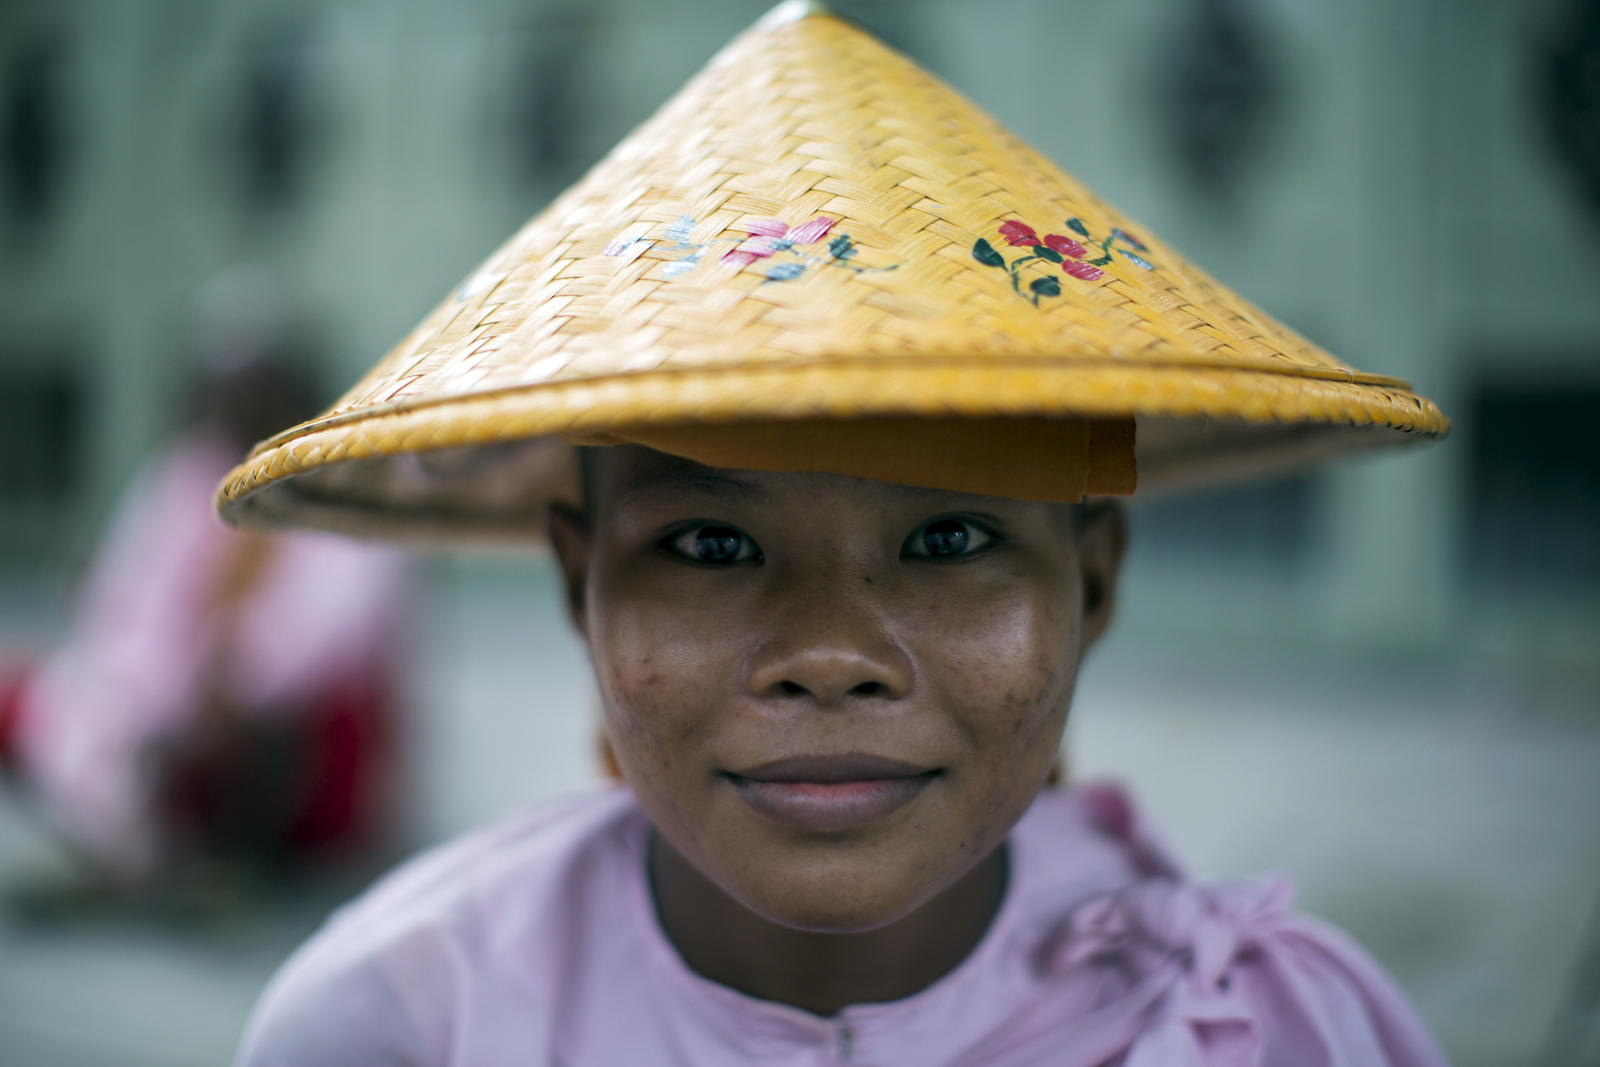 A Buddhist novice nun poses for a portrait in Mandalay